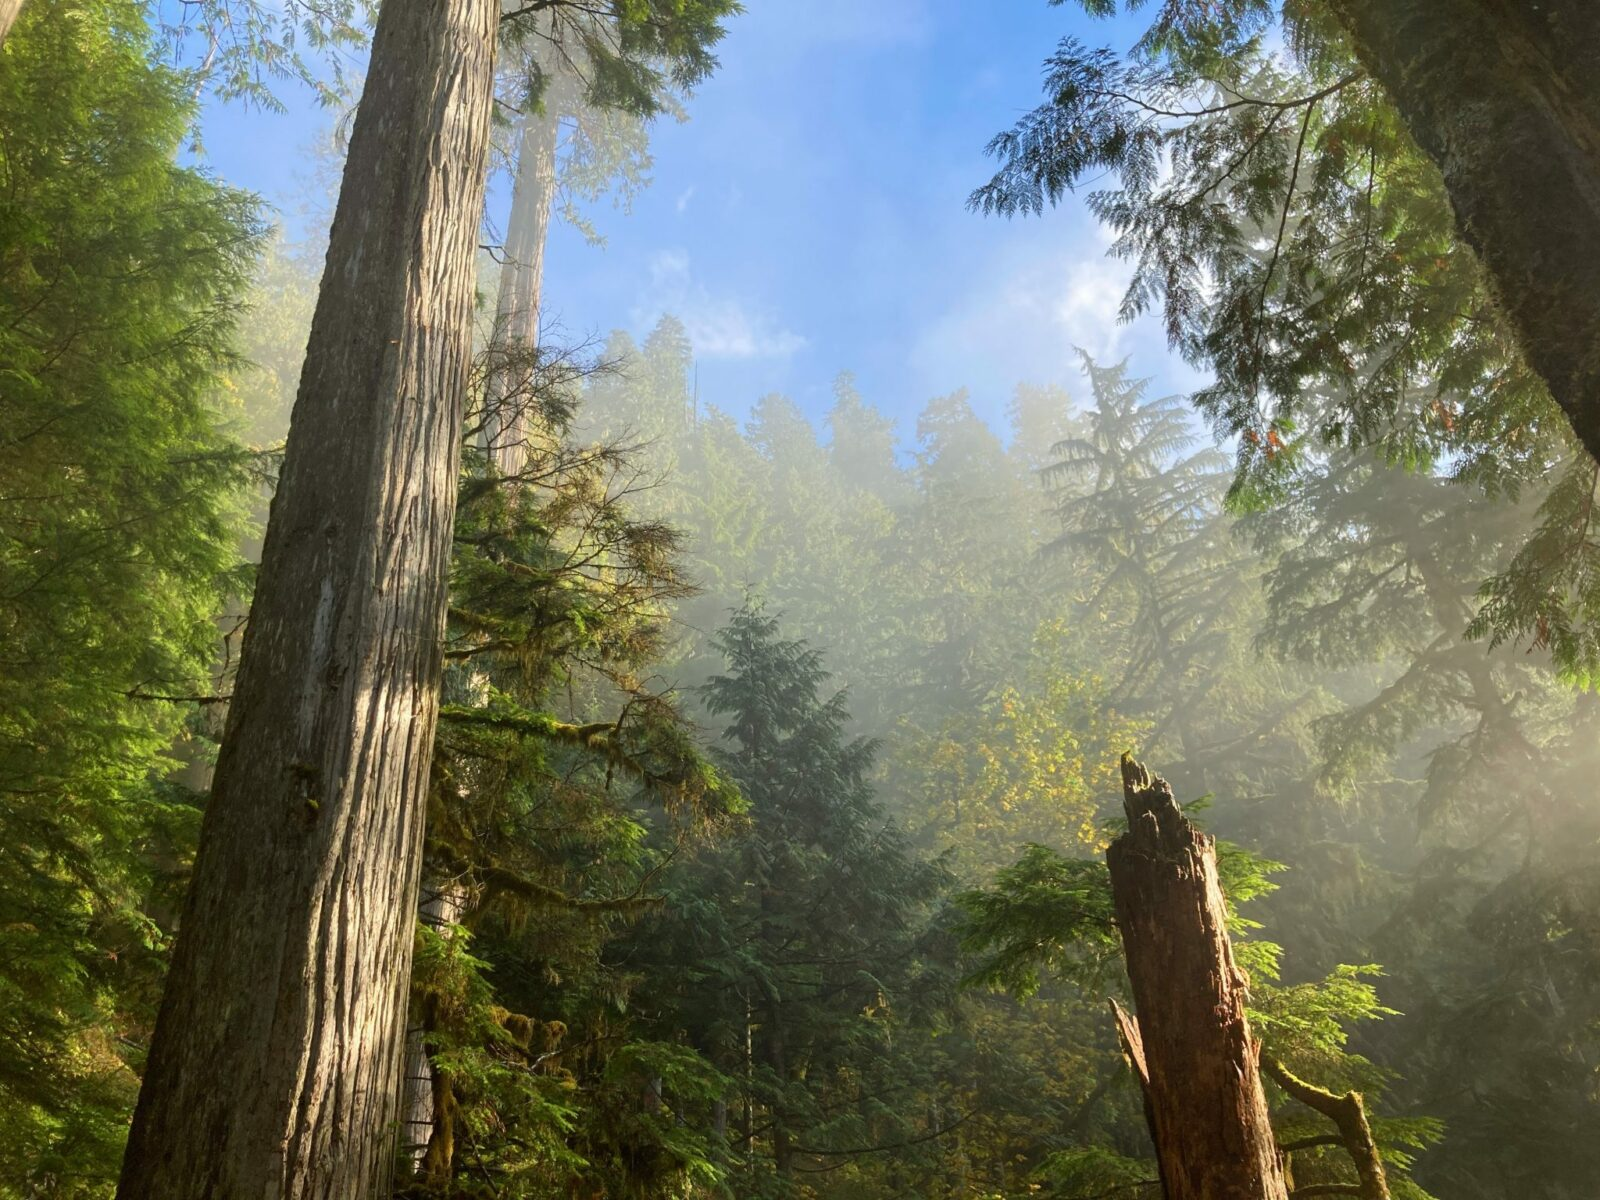 Looking up from below and two tall evergreen trees which are surrounded by many other more distant evergreen trees on the Boulder River trail. The fog is starting to burn off and blue sky is visible above the trees